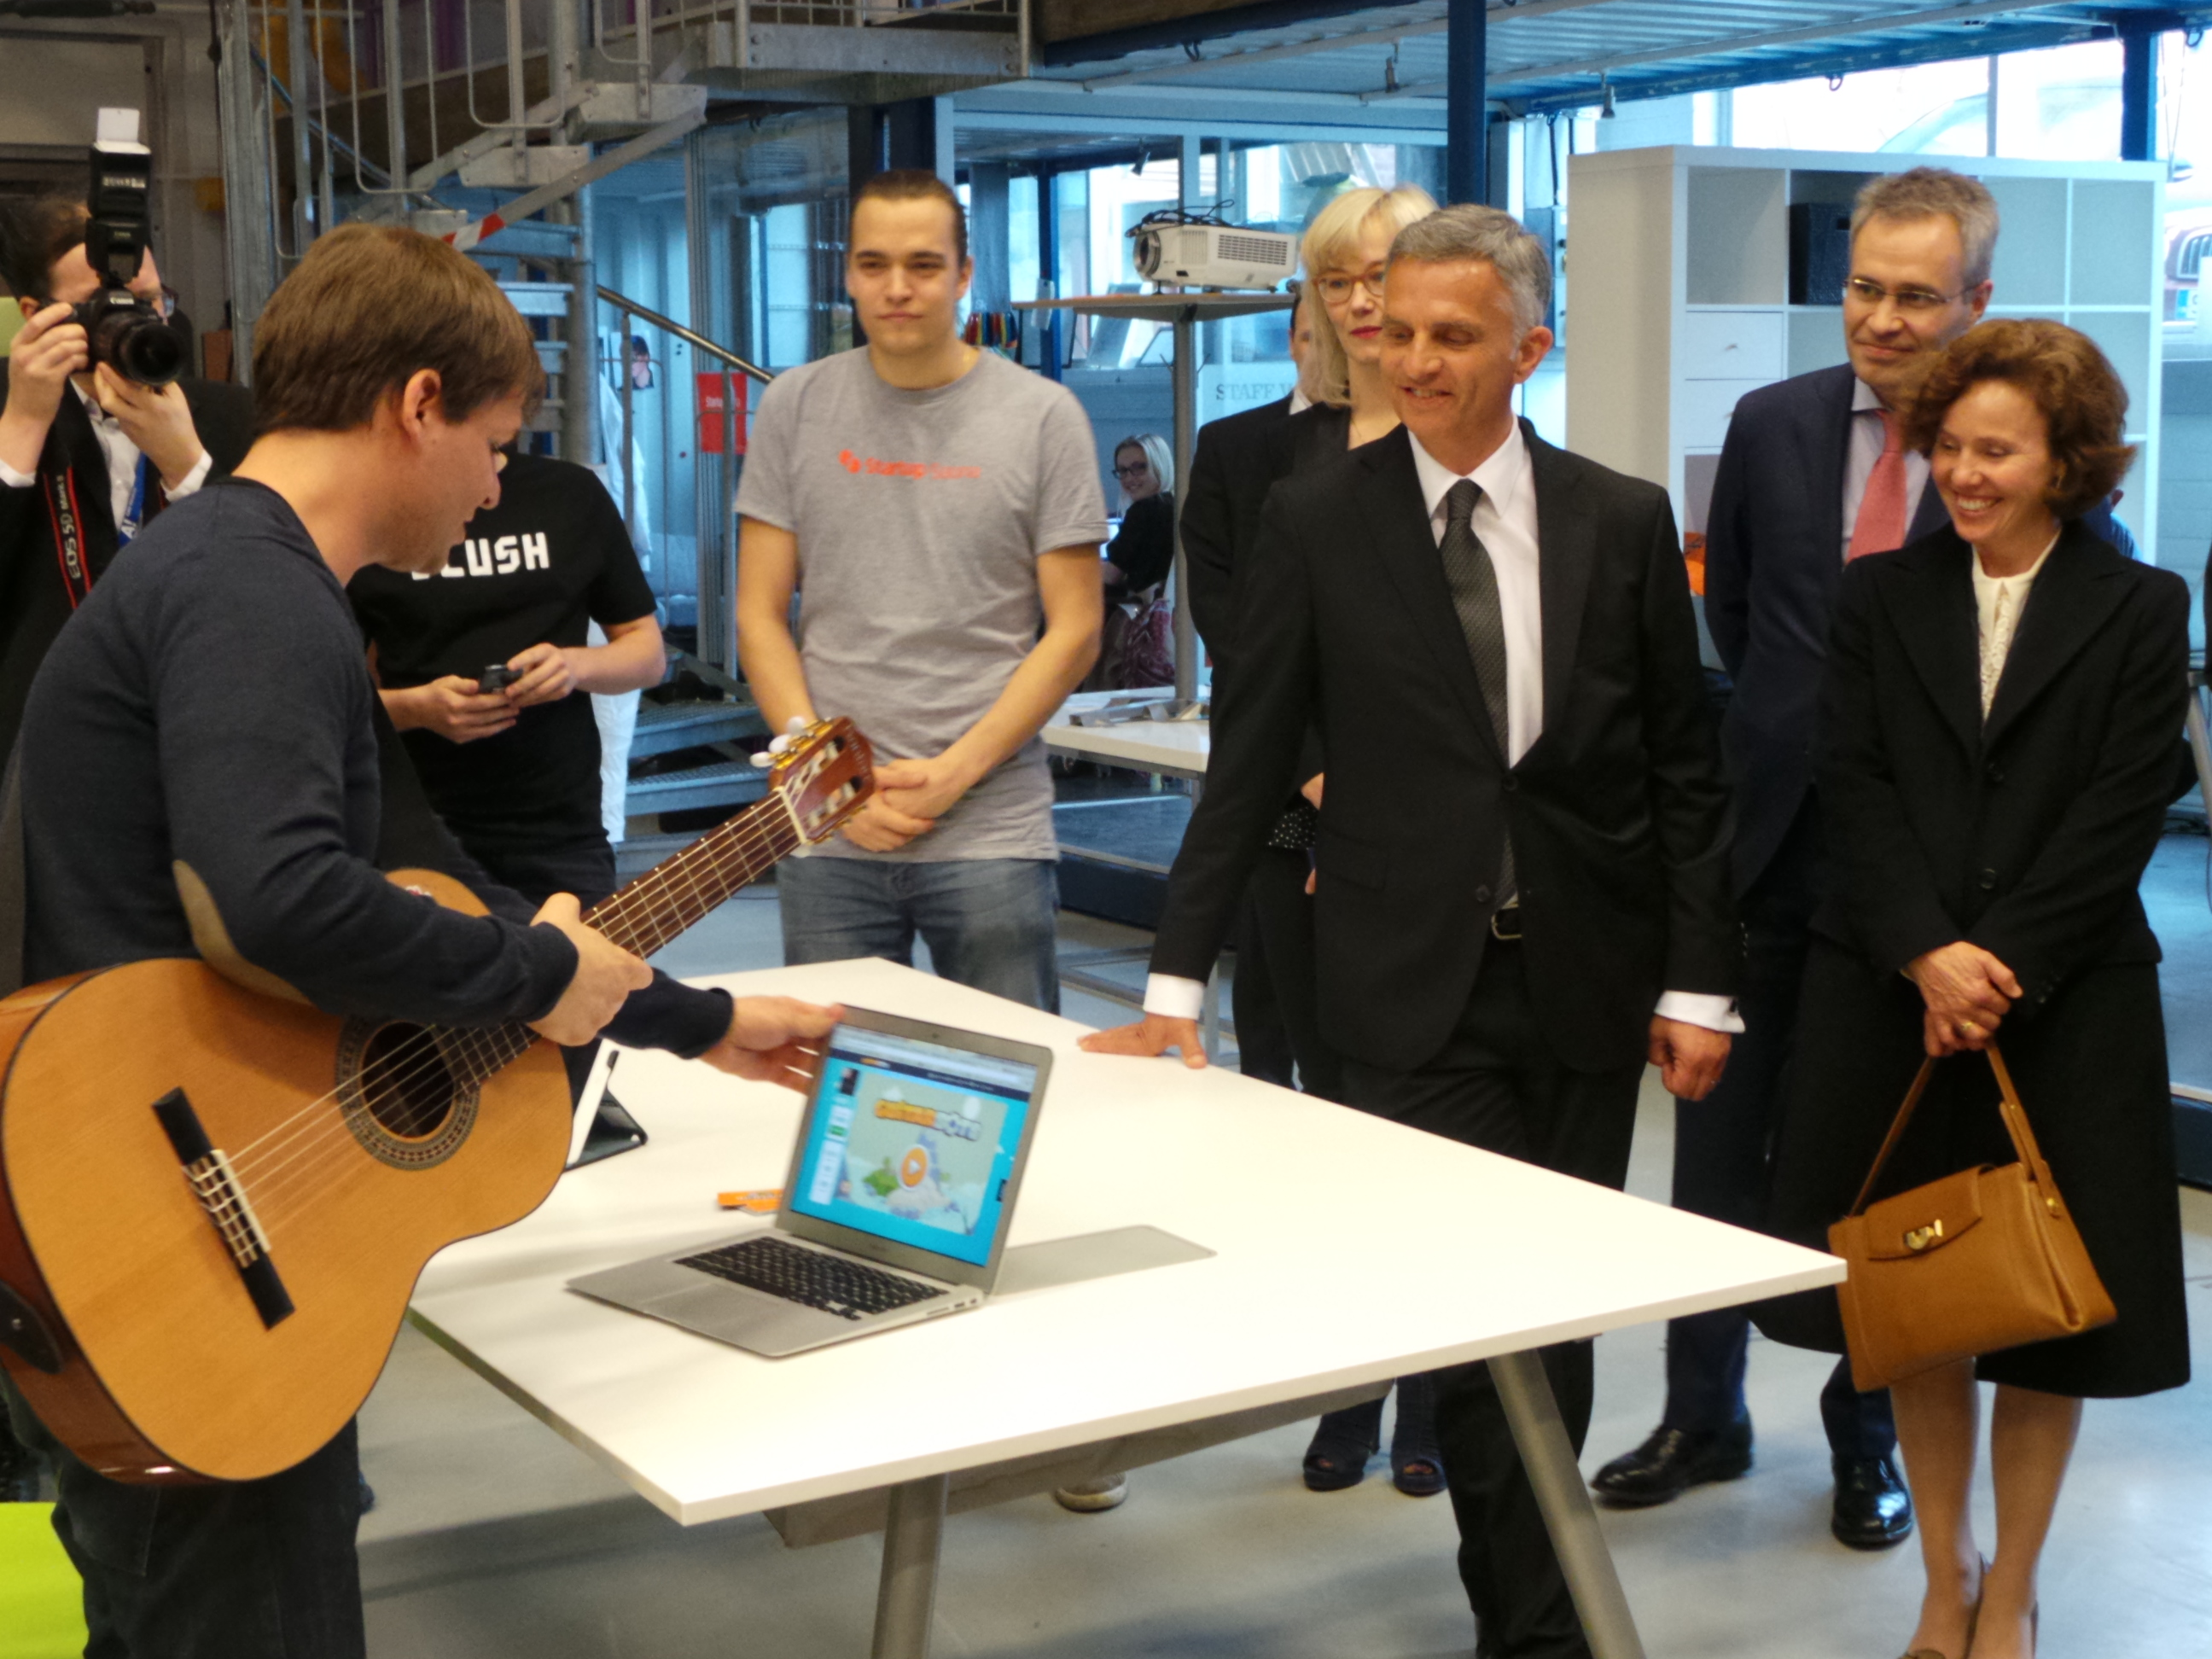 A Swiss explains a computer program on learning to play the guitar to President Didier Burkhalter and his wife.